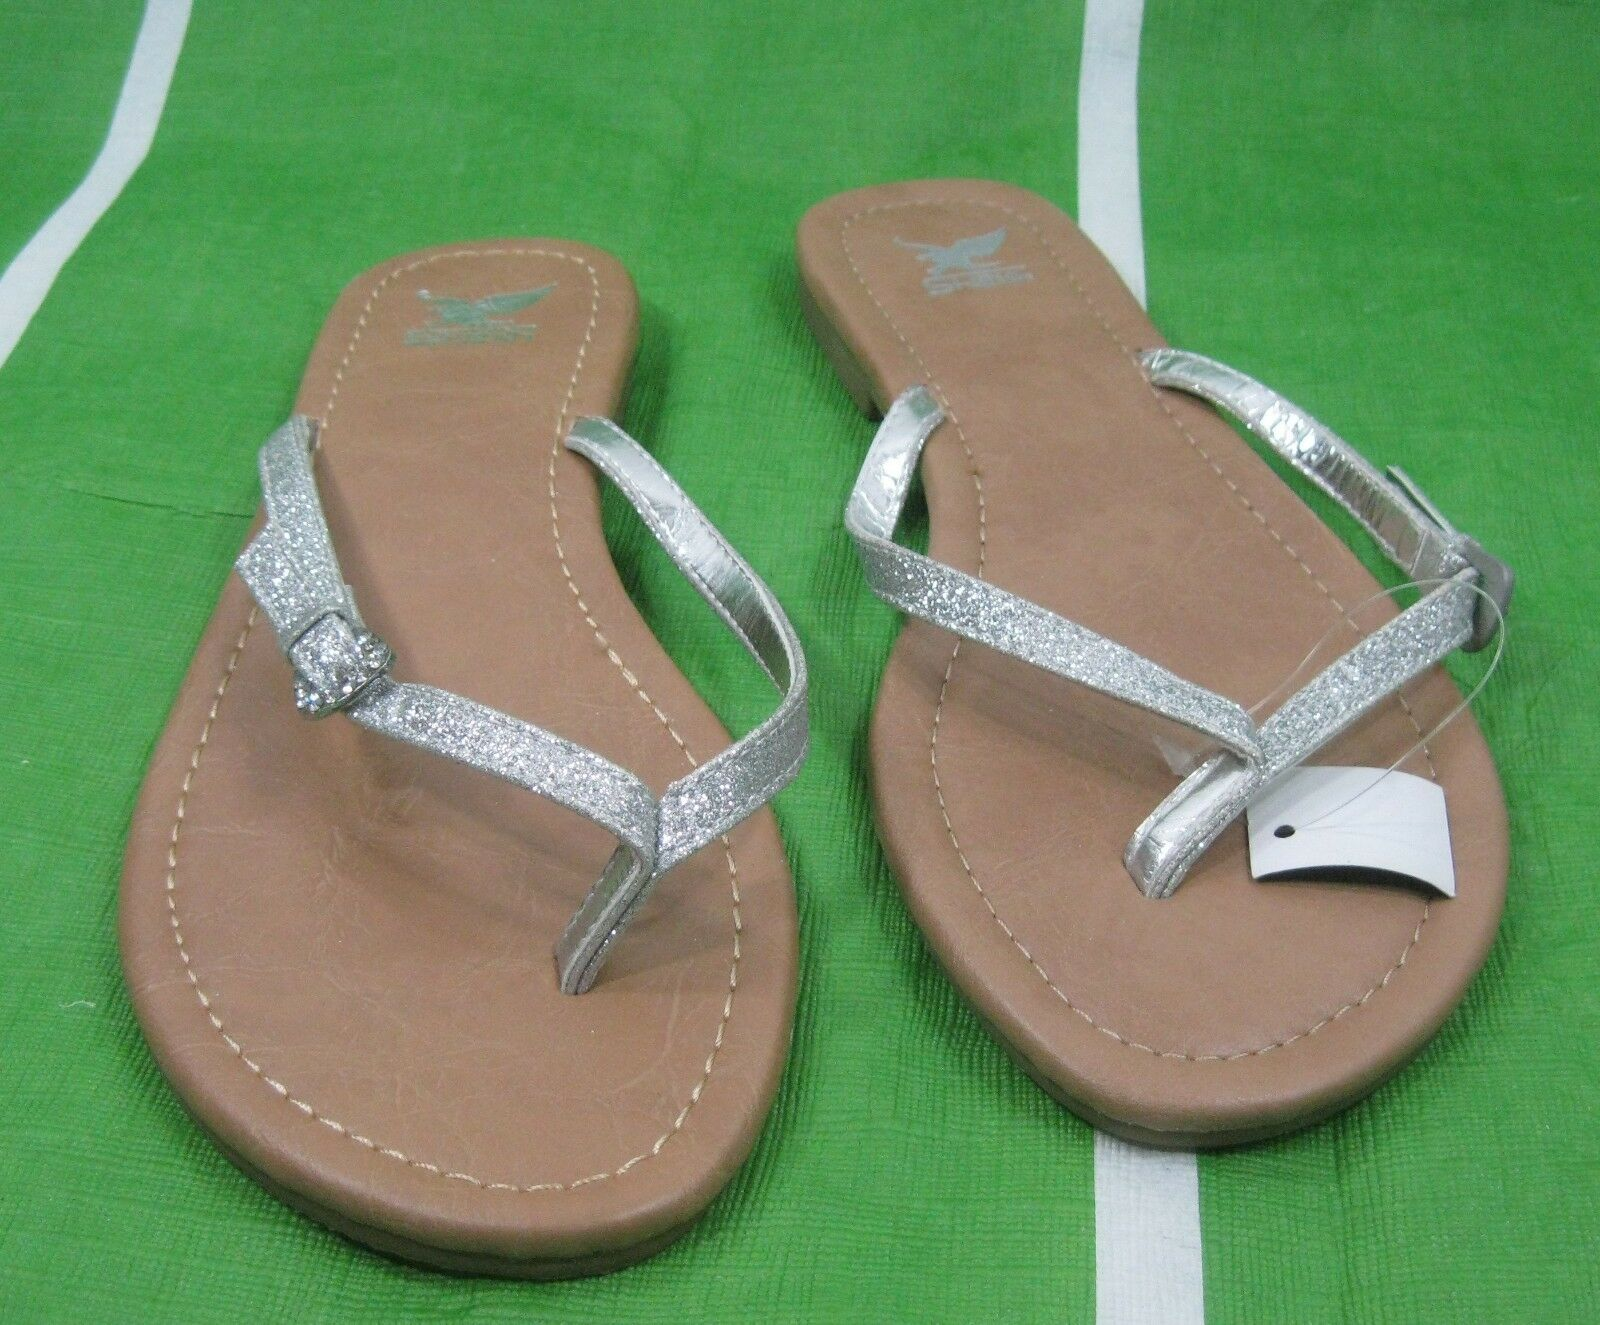 new lady Summer Shoes  glittery silver Womens Shoes Summer Slip On Flip Flop Sandals Size 6 7cbb13